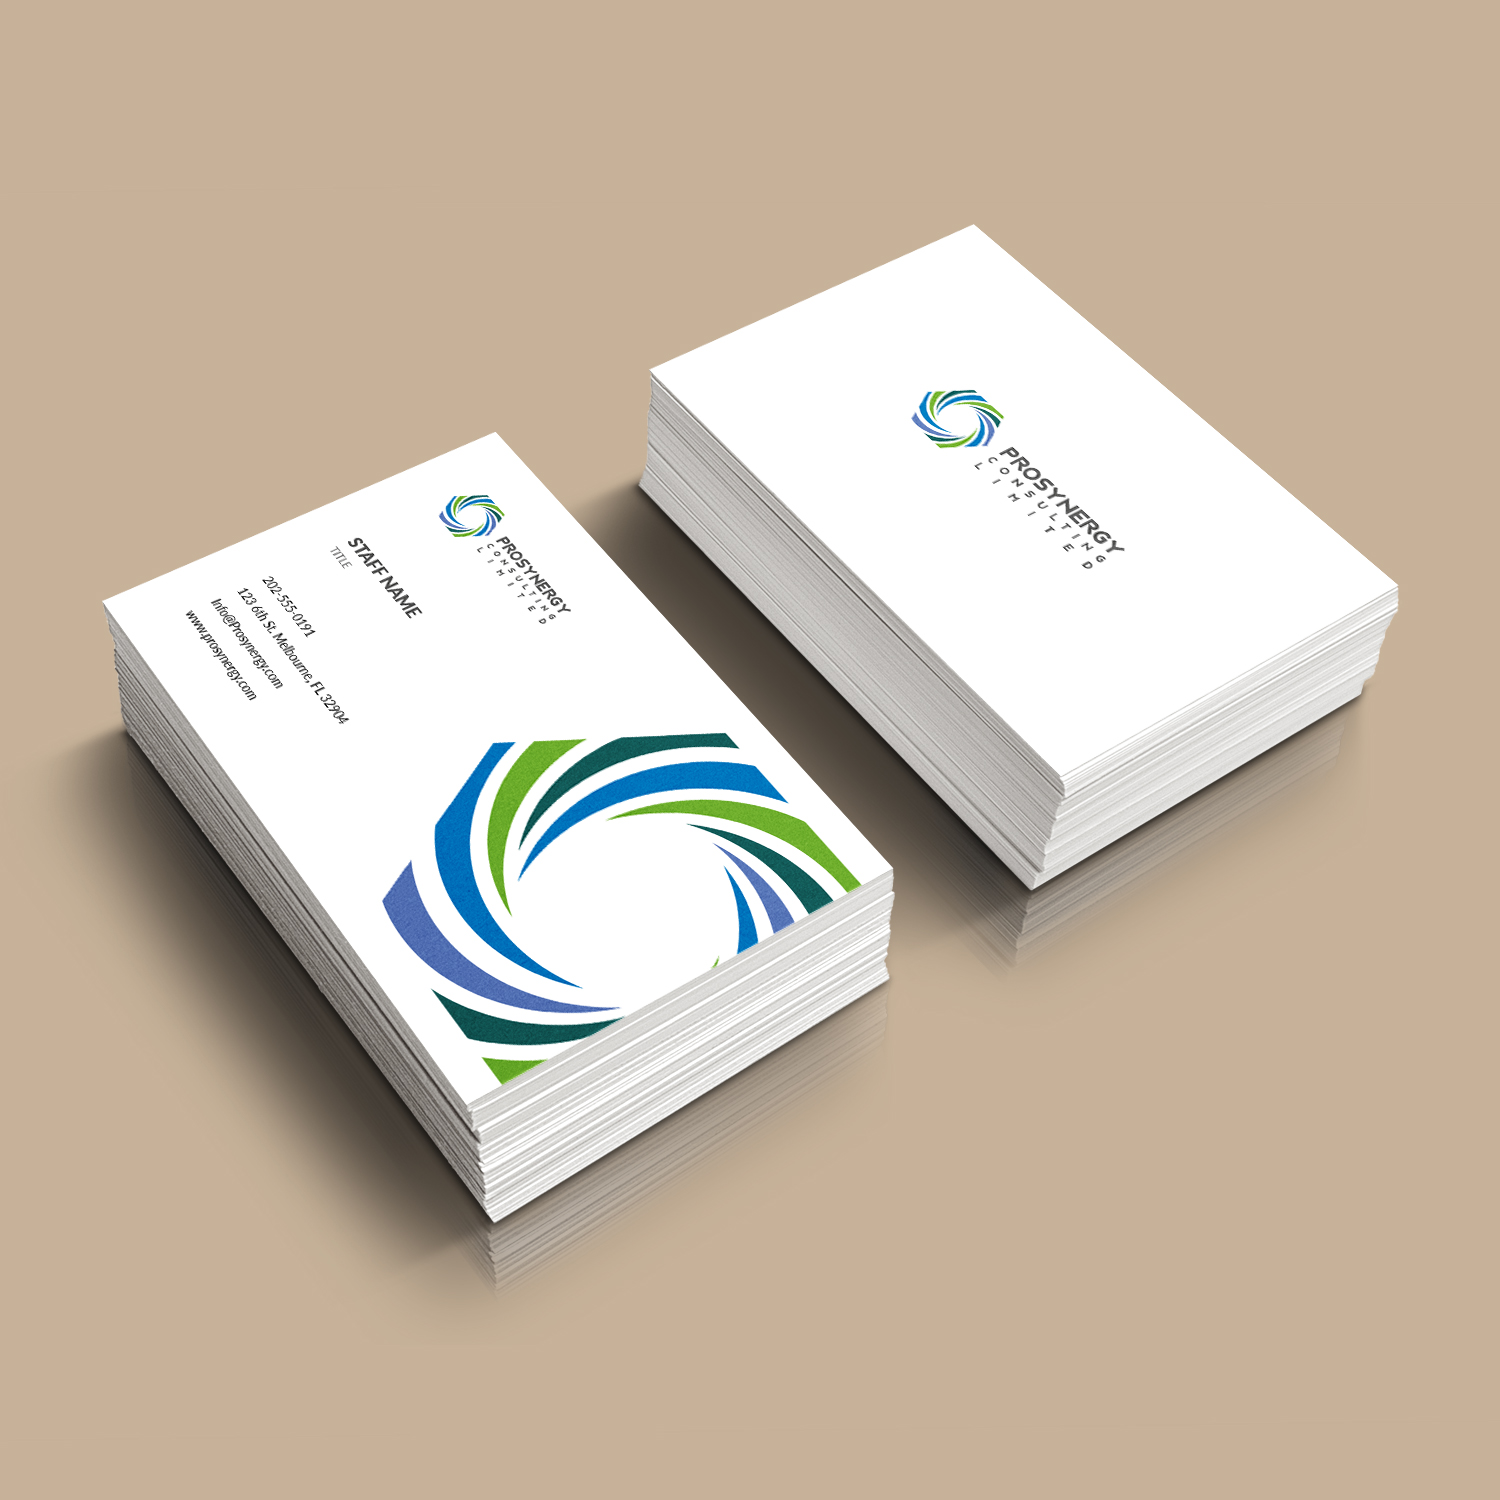 Modern professional business card design by bdesigner9 design business card design by bdesigner9 for this project design 16534504 colourmoves